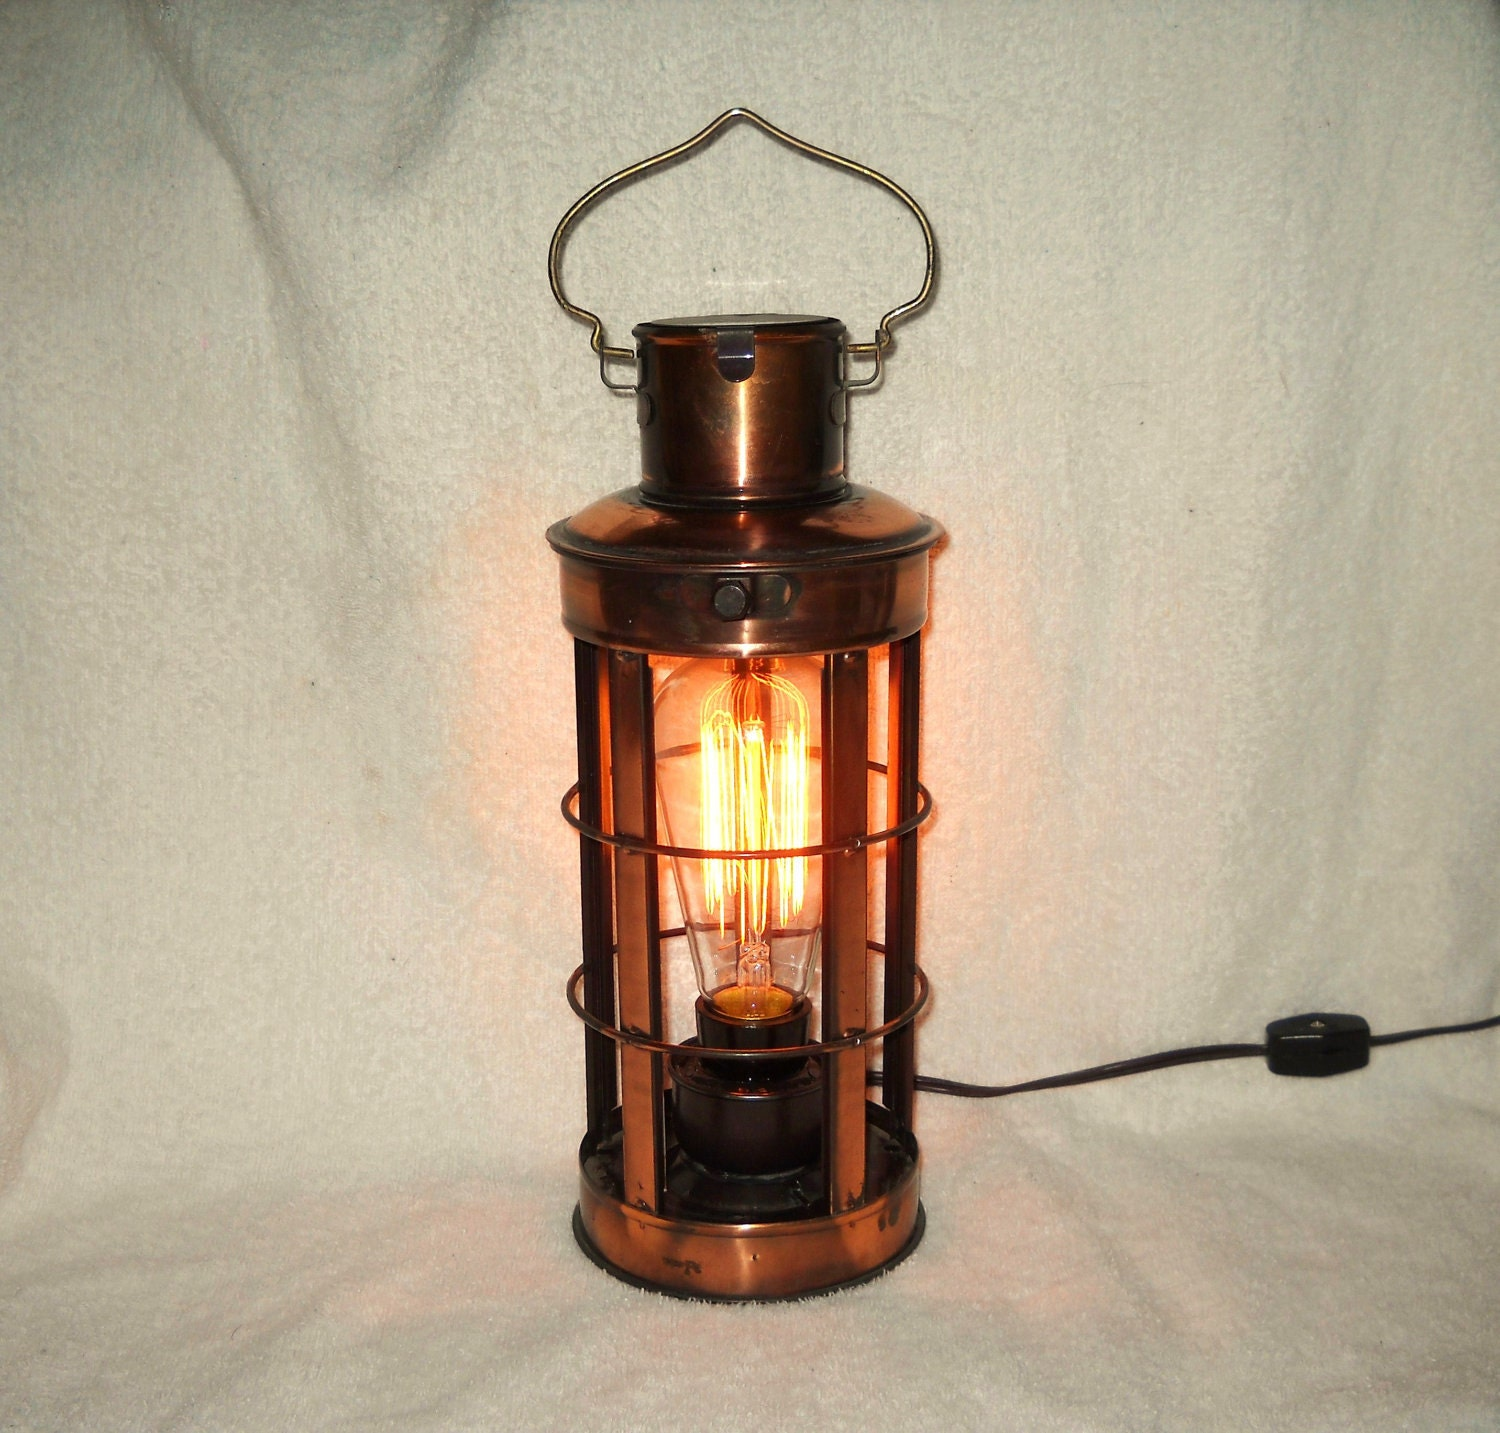 Metal Steampunk Industrial lantern lamp copper electric table